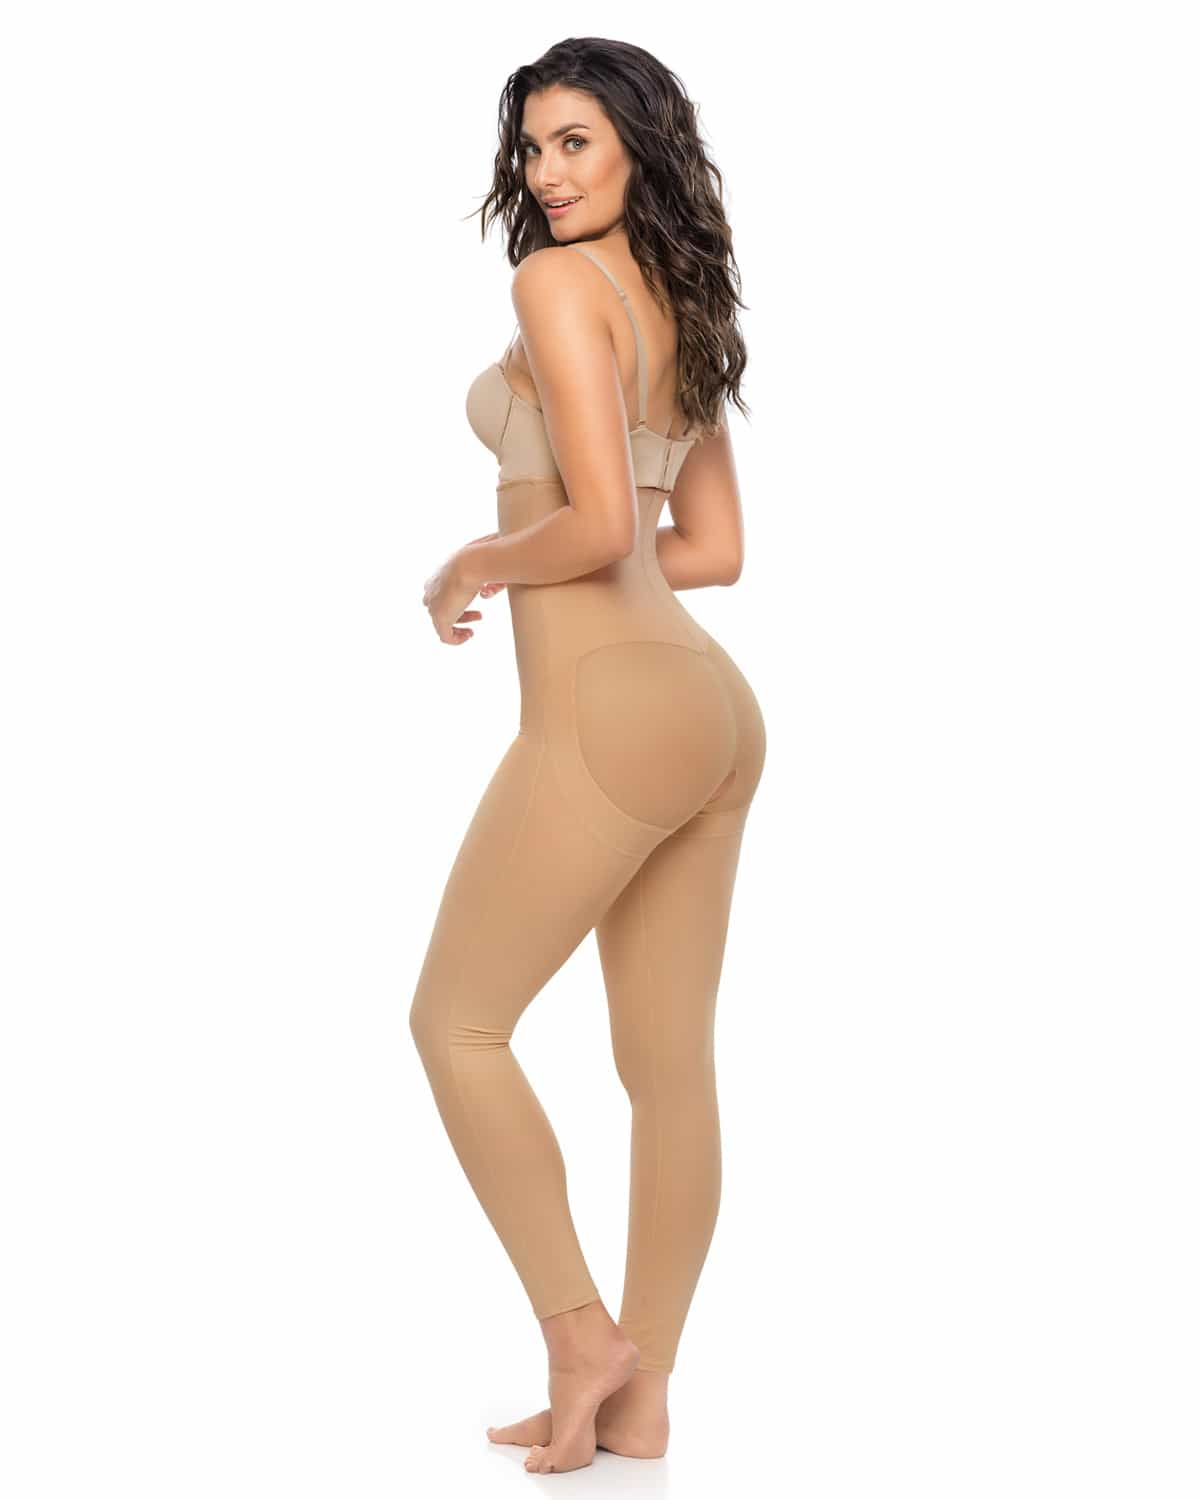 573de1a5f9 Brazilian Butt Lift Compression Garment for Butt Lift Augmentation Surgery  ...